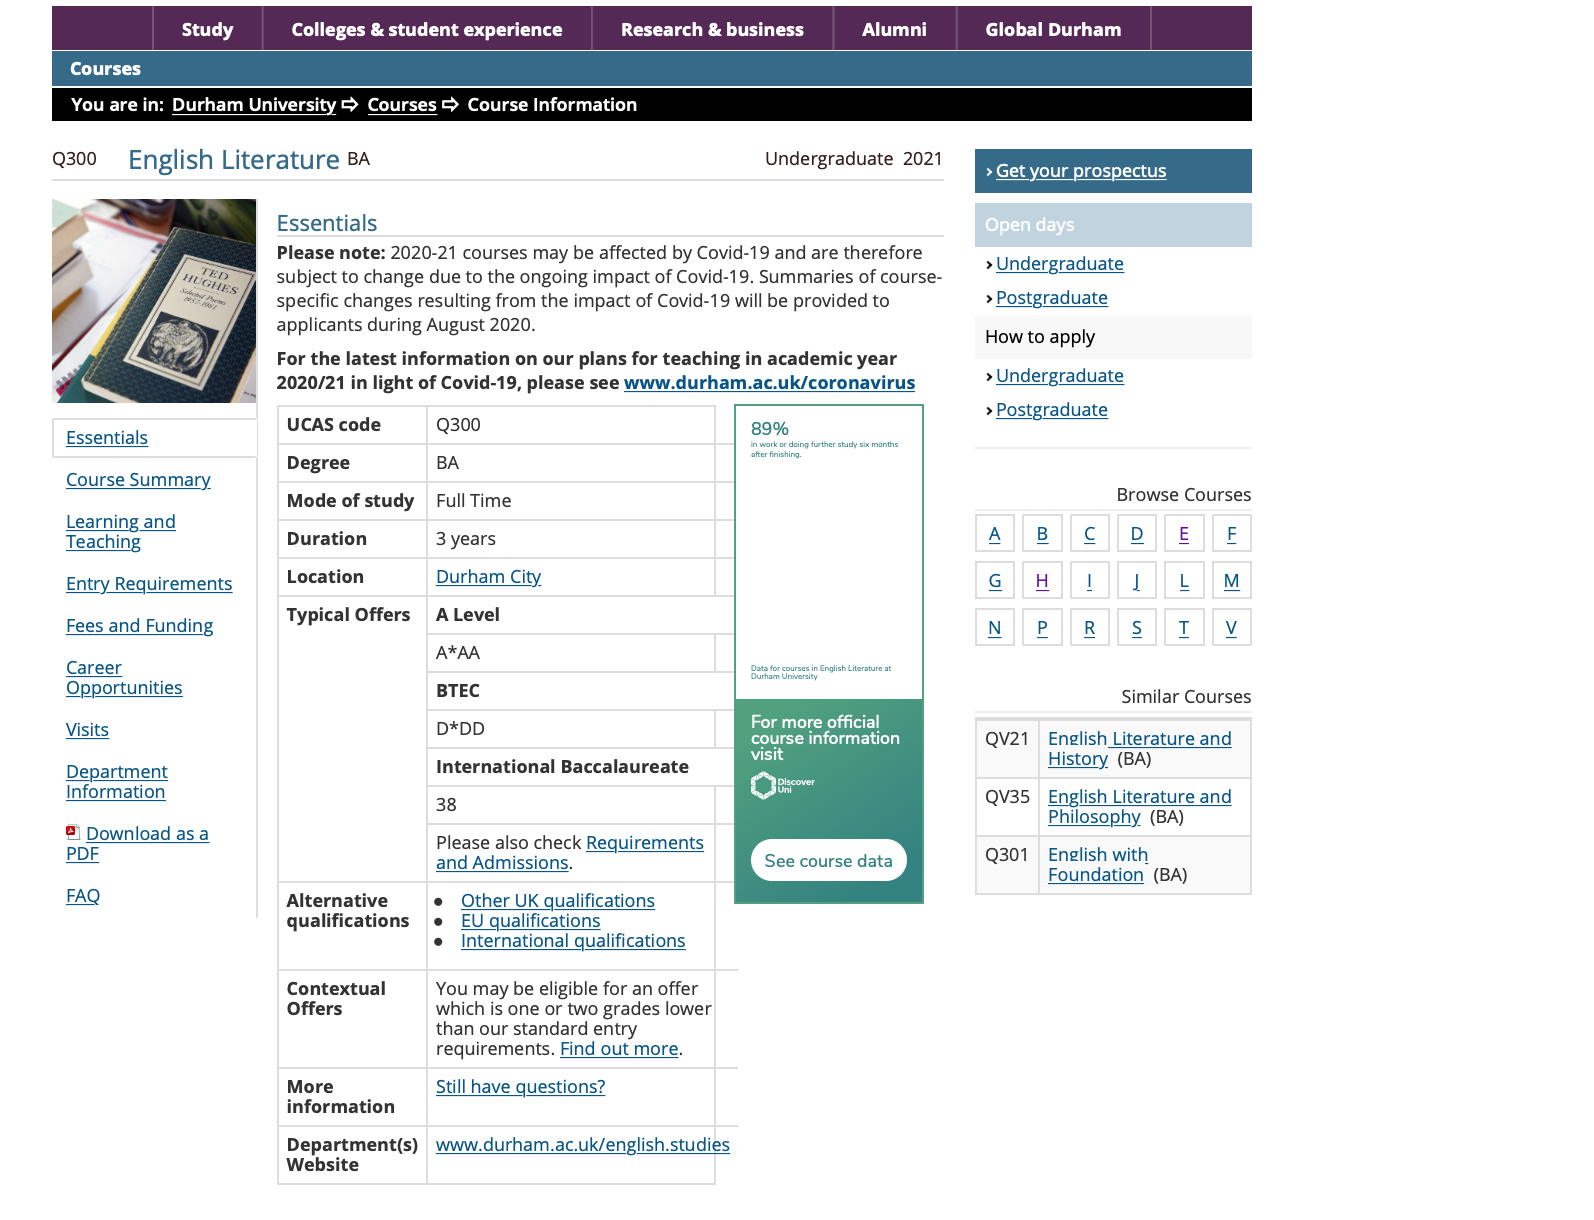 Example of a course description page from the Durham University website.